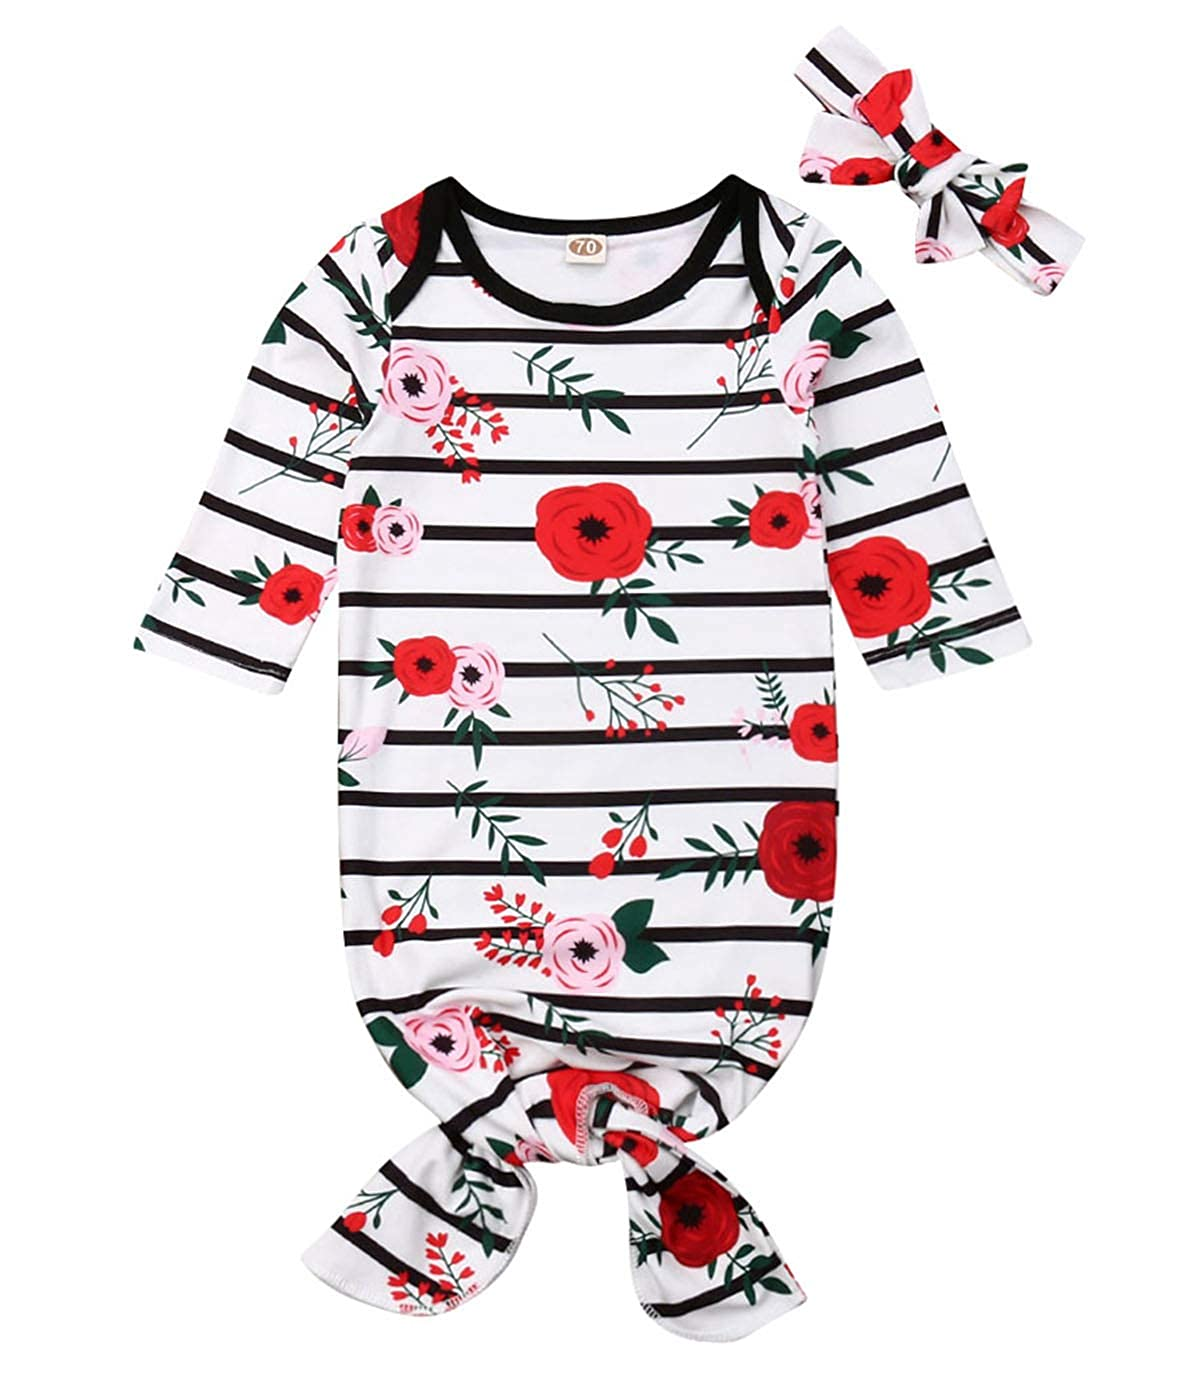 Newborn Baby Girl Floral Nightgowns with Headband Sleeper Gown Take Home Outfit